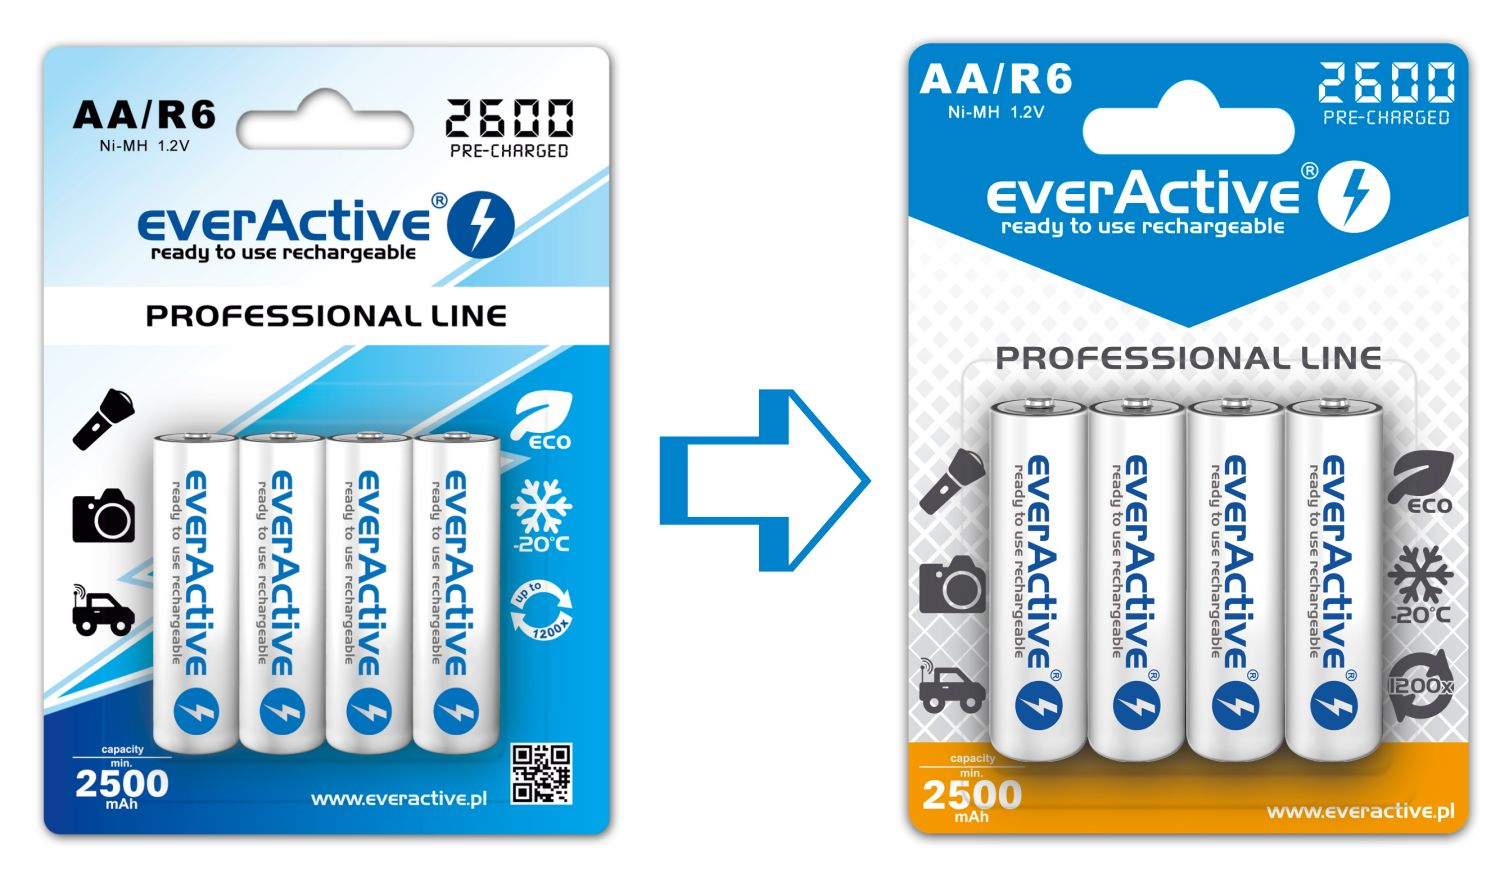 everActive blister cards - old vs new